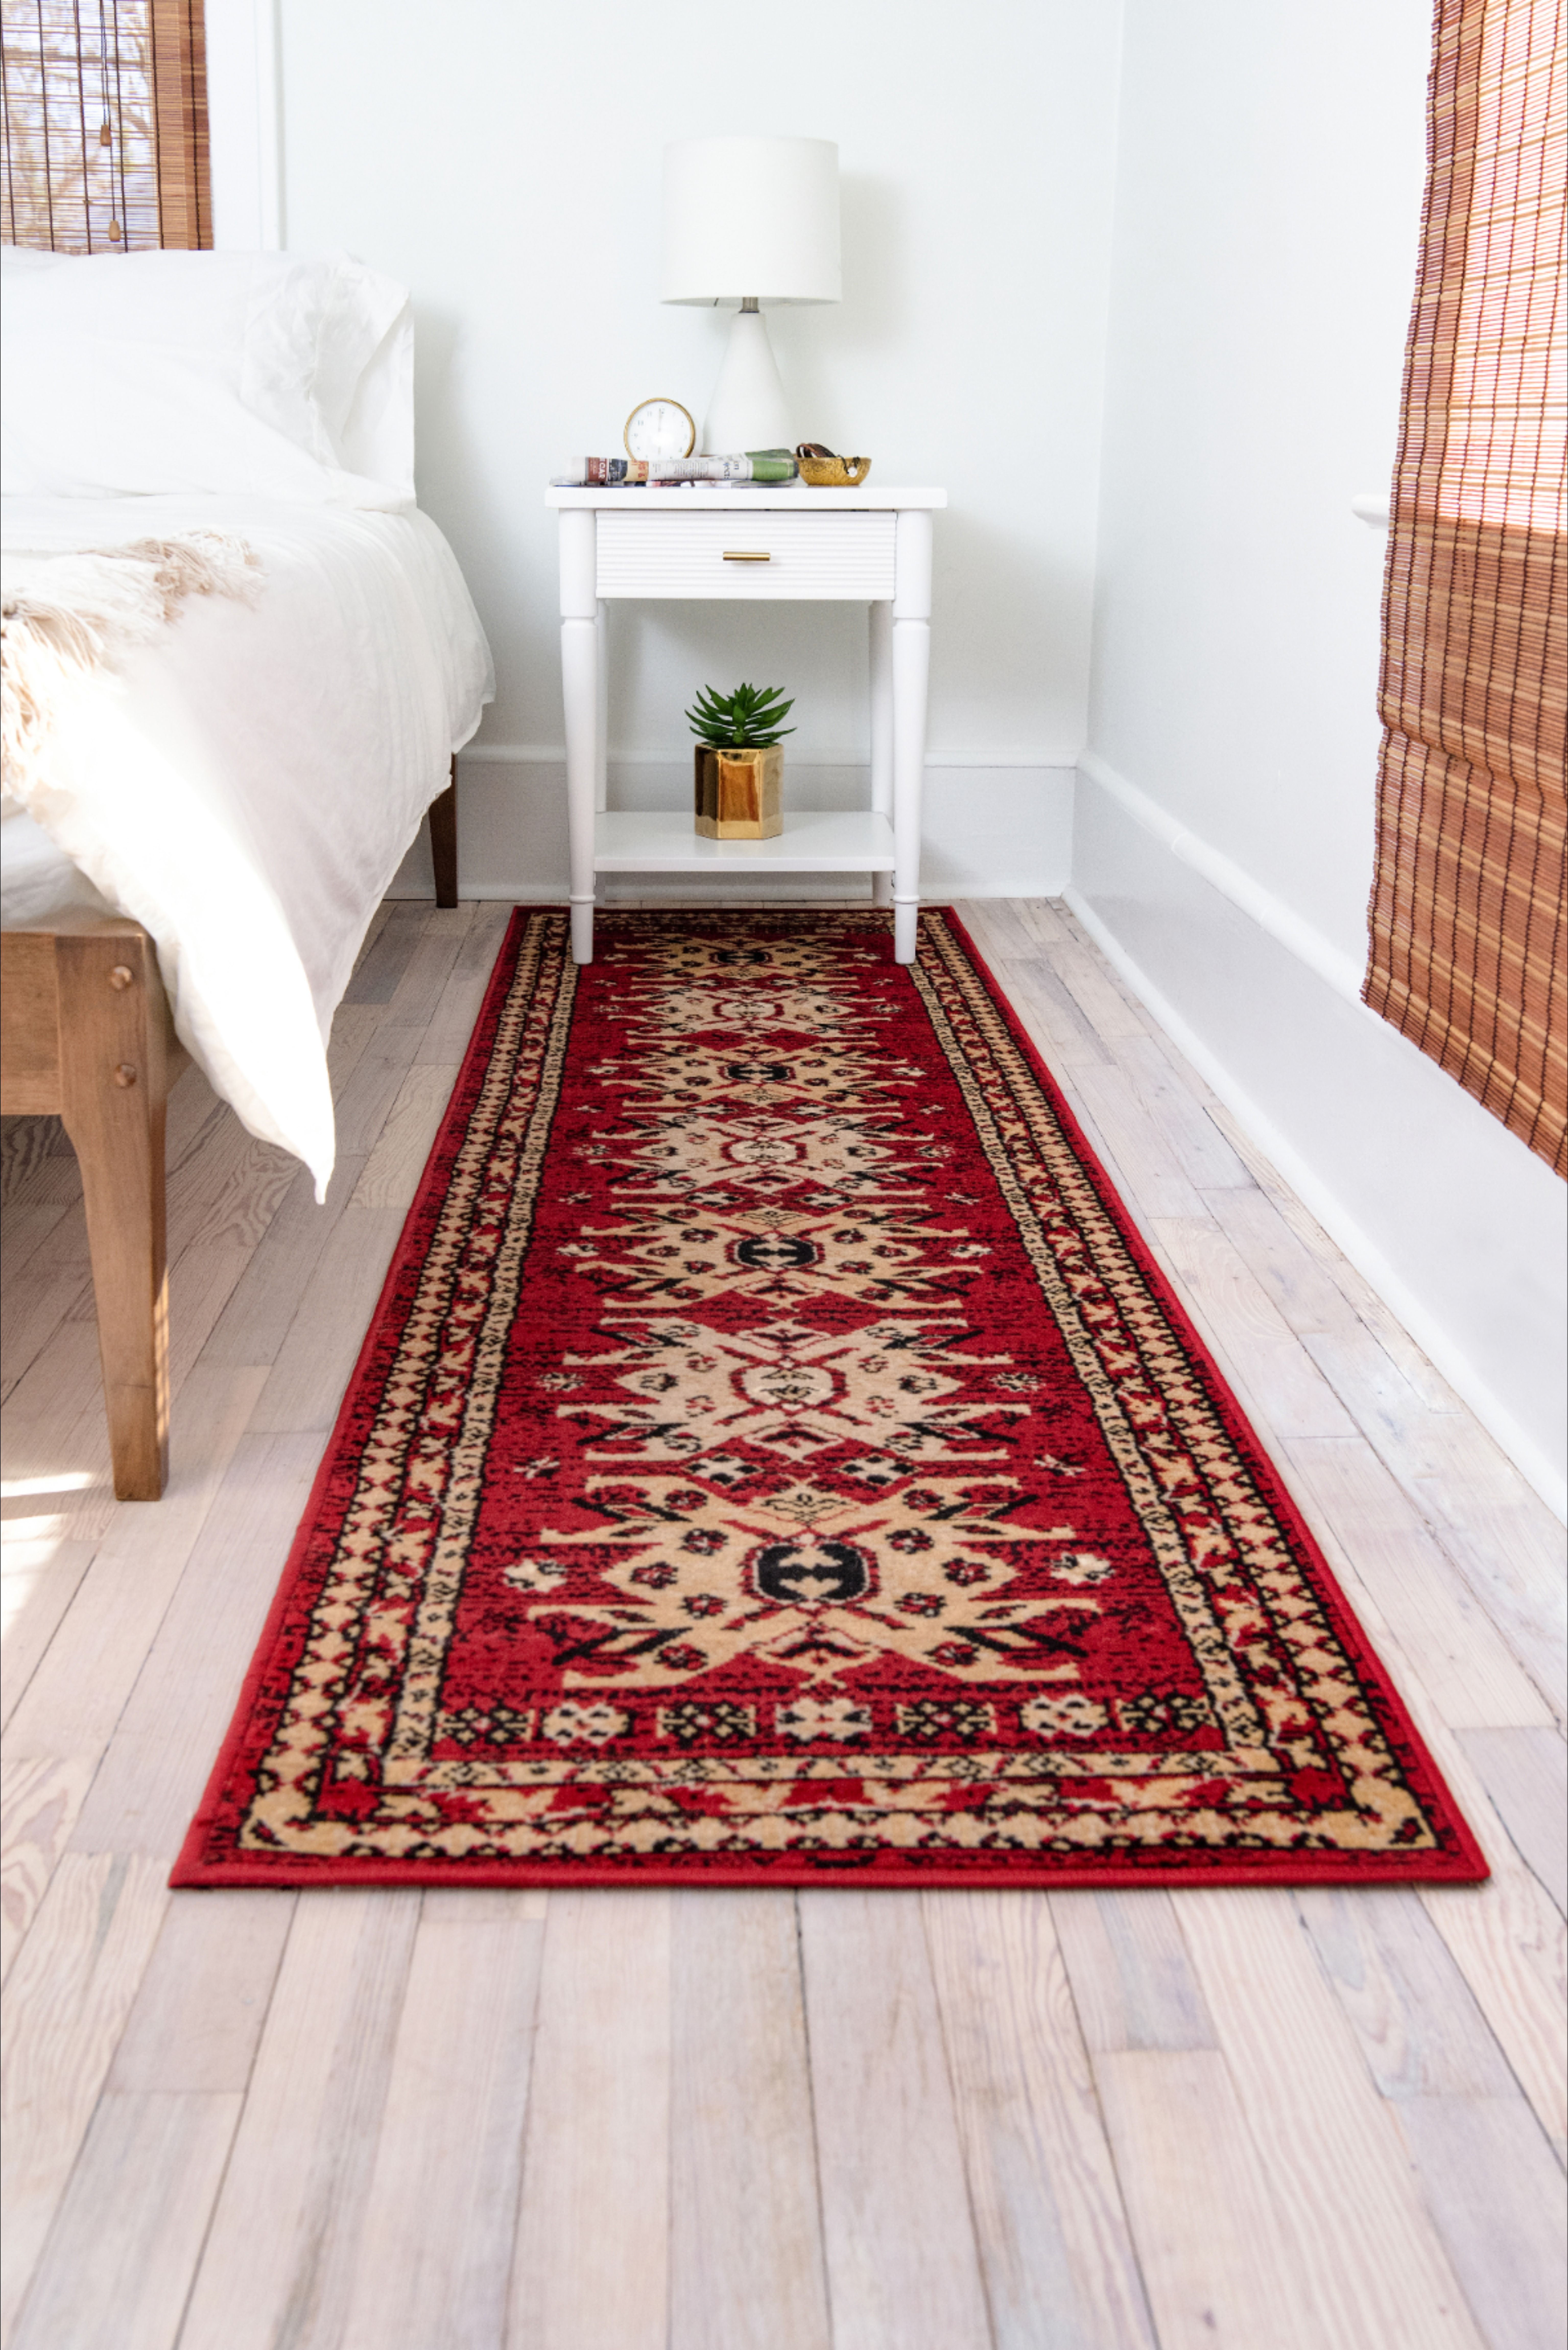 Shop Our Heris Collection To Discover Stunning Designs And Styles That Will Transform Your Bedroom Bedroomrugs Tra In 2020 Traditional Rugs Unique Rugs Bedroom Rug